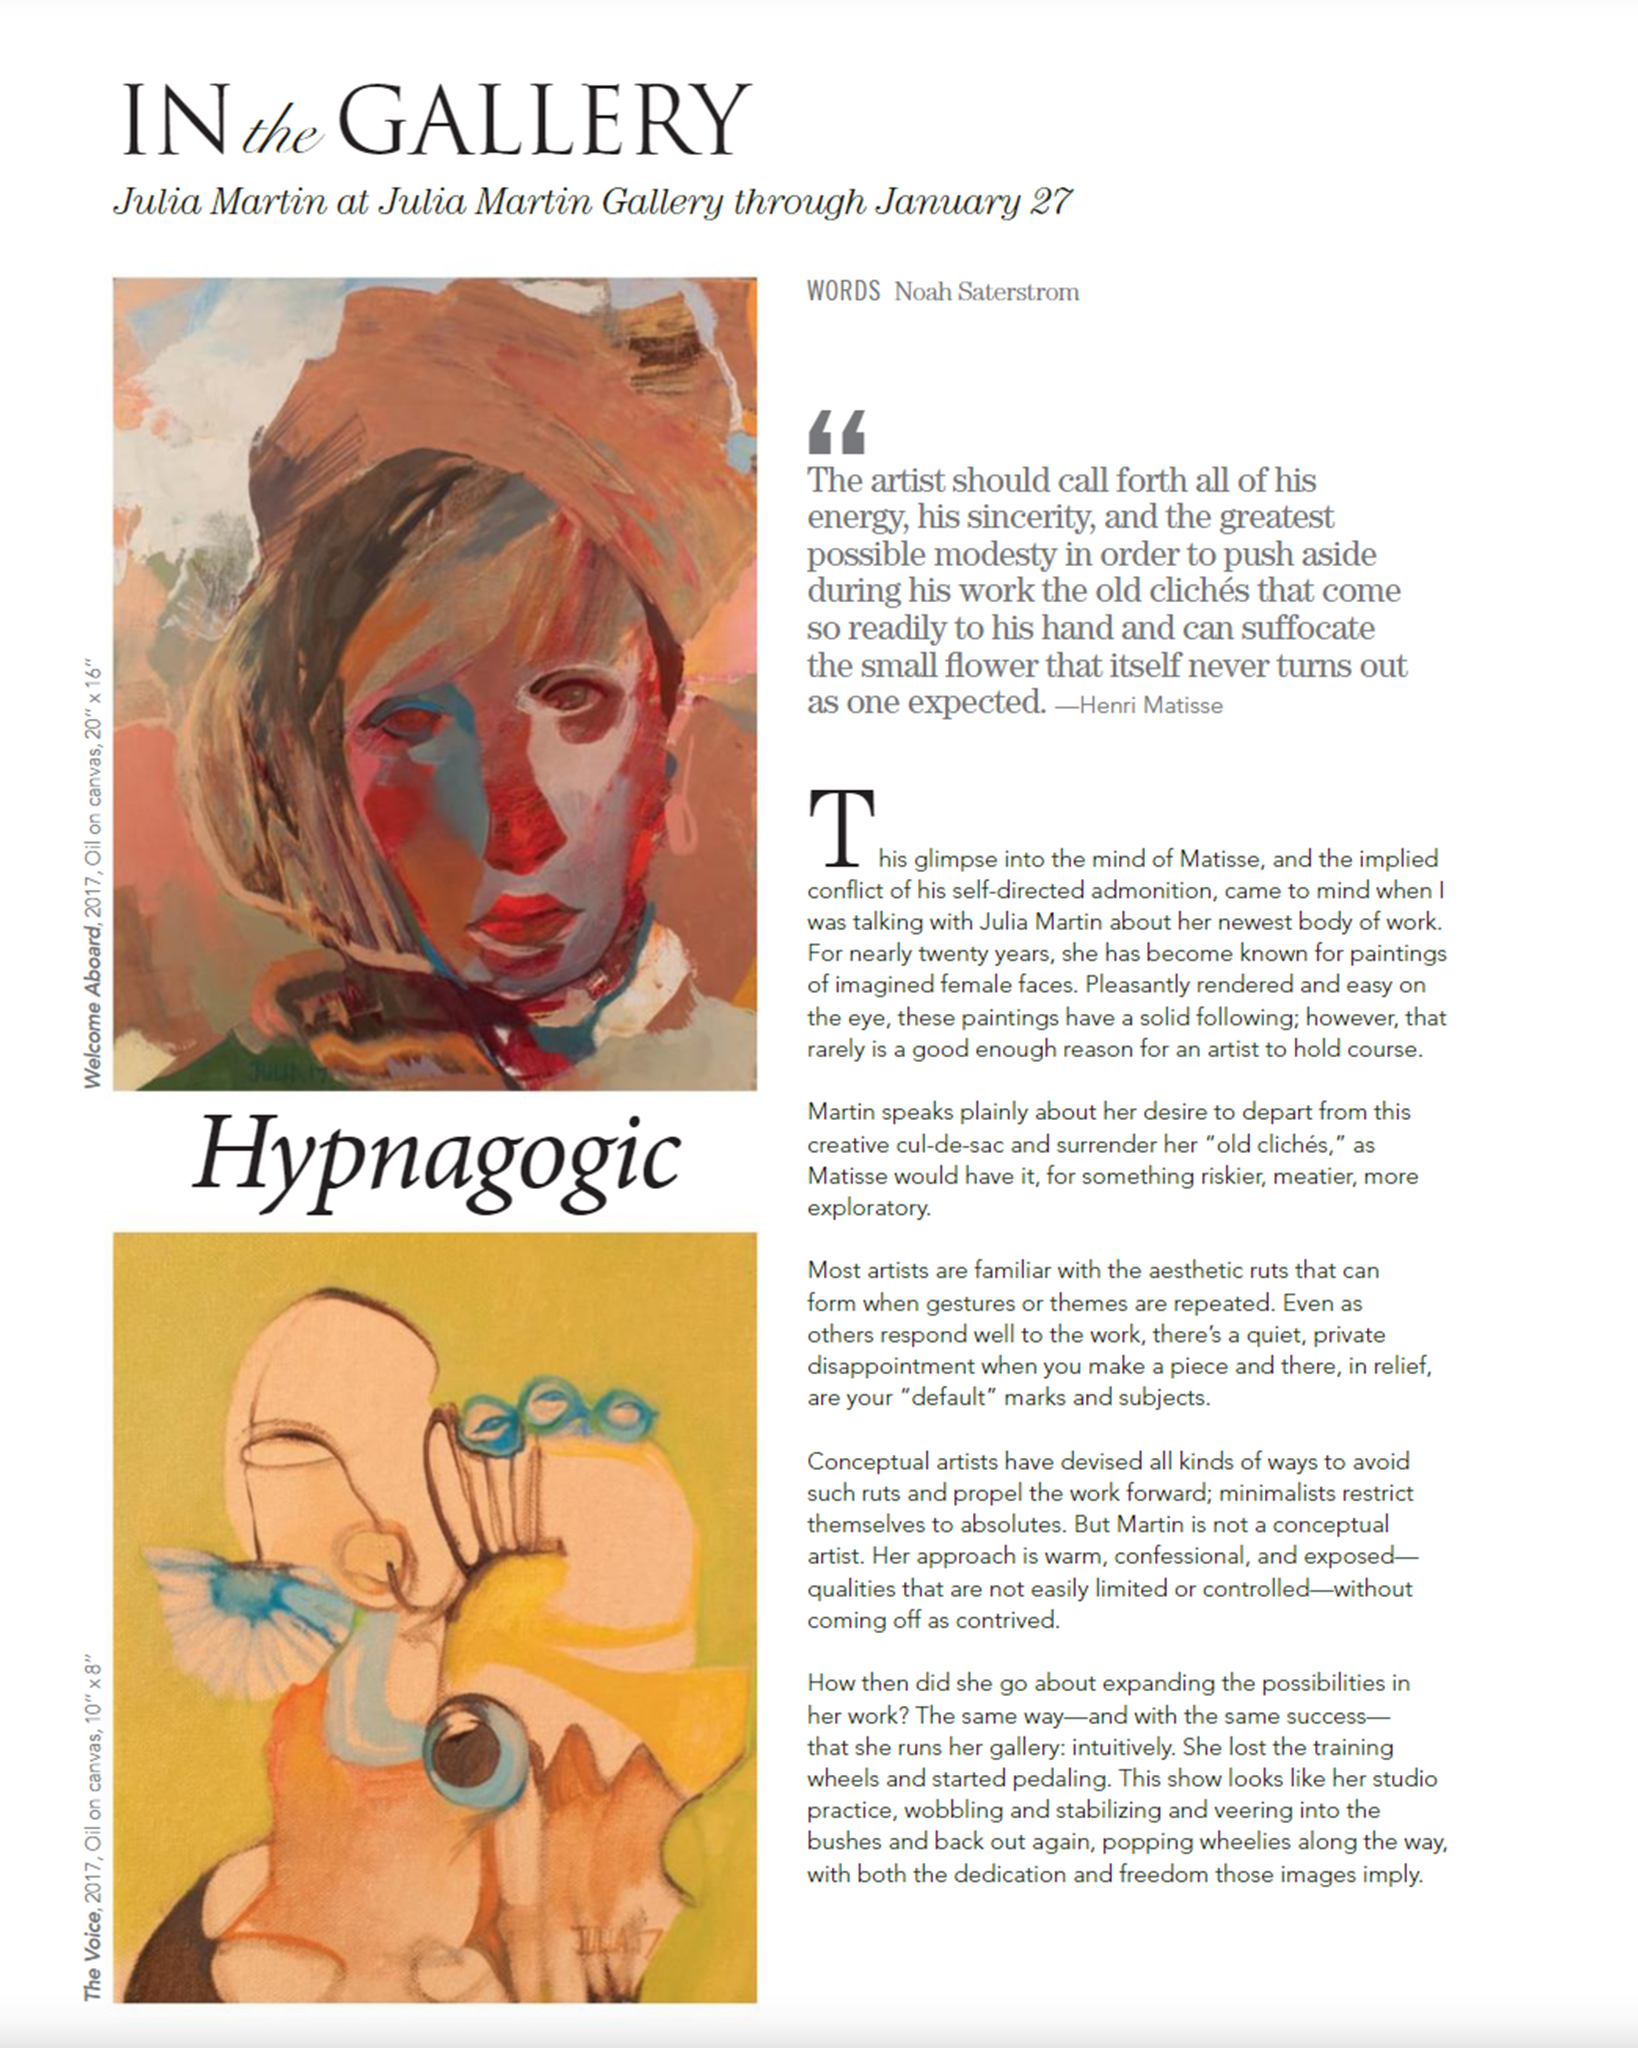 IN THE GALLERY: HYPNAGOGIC